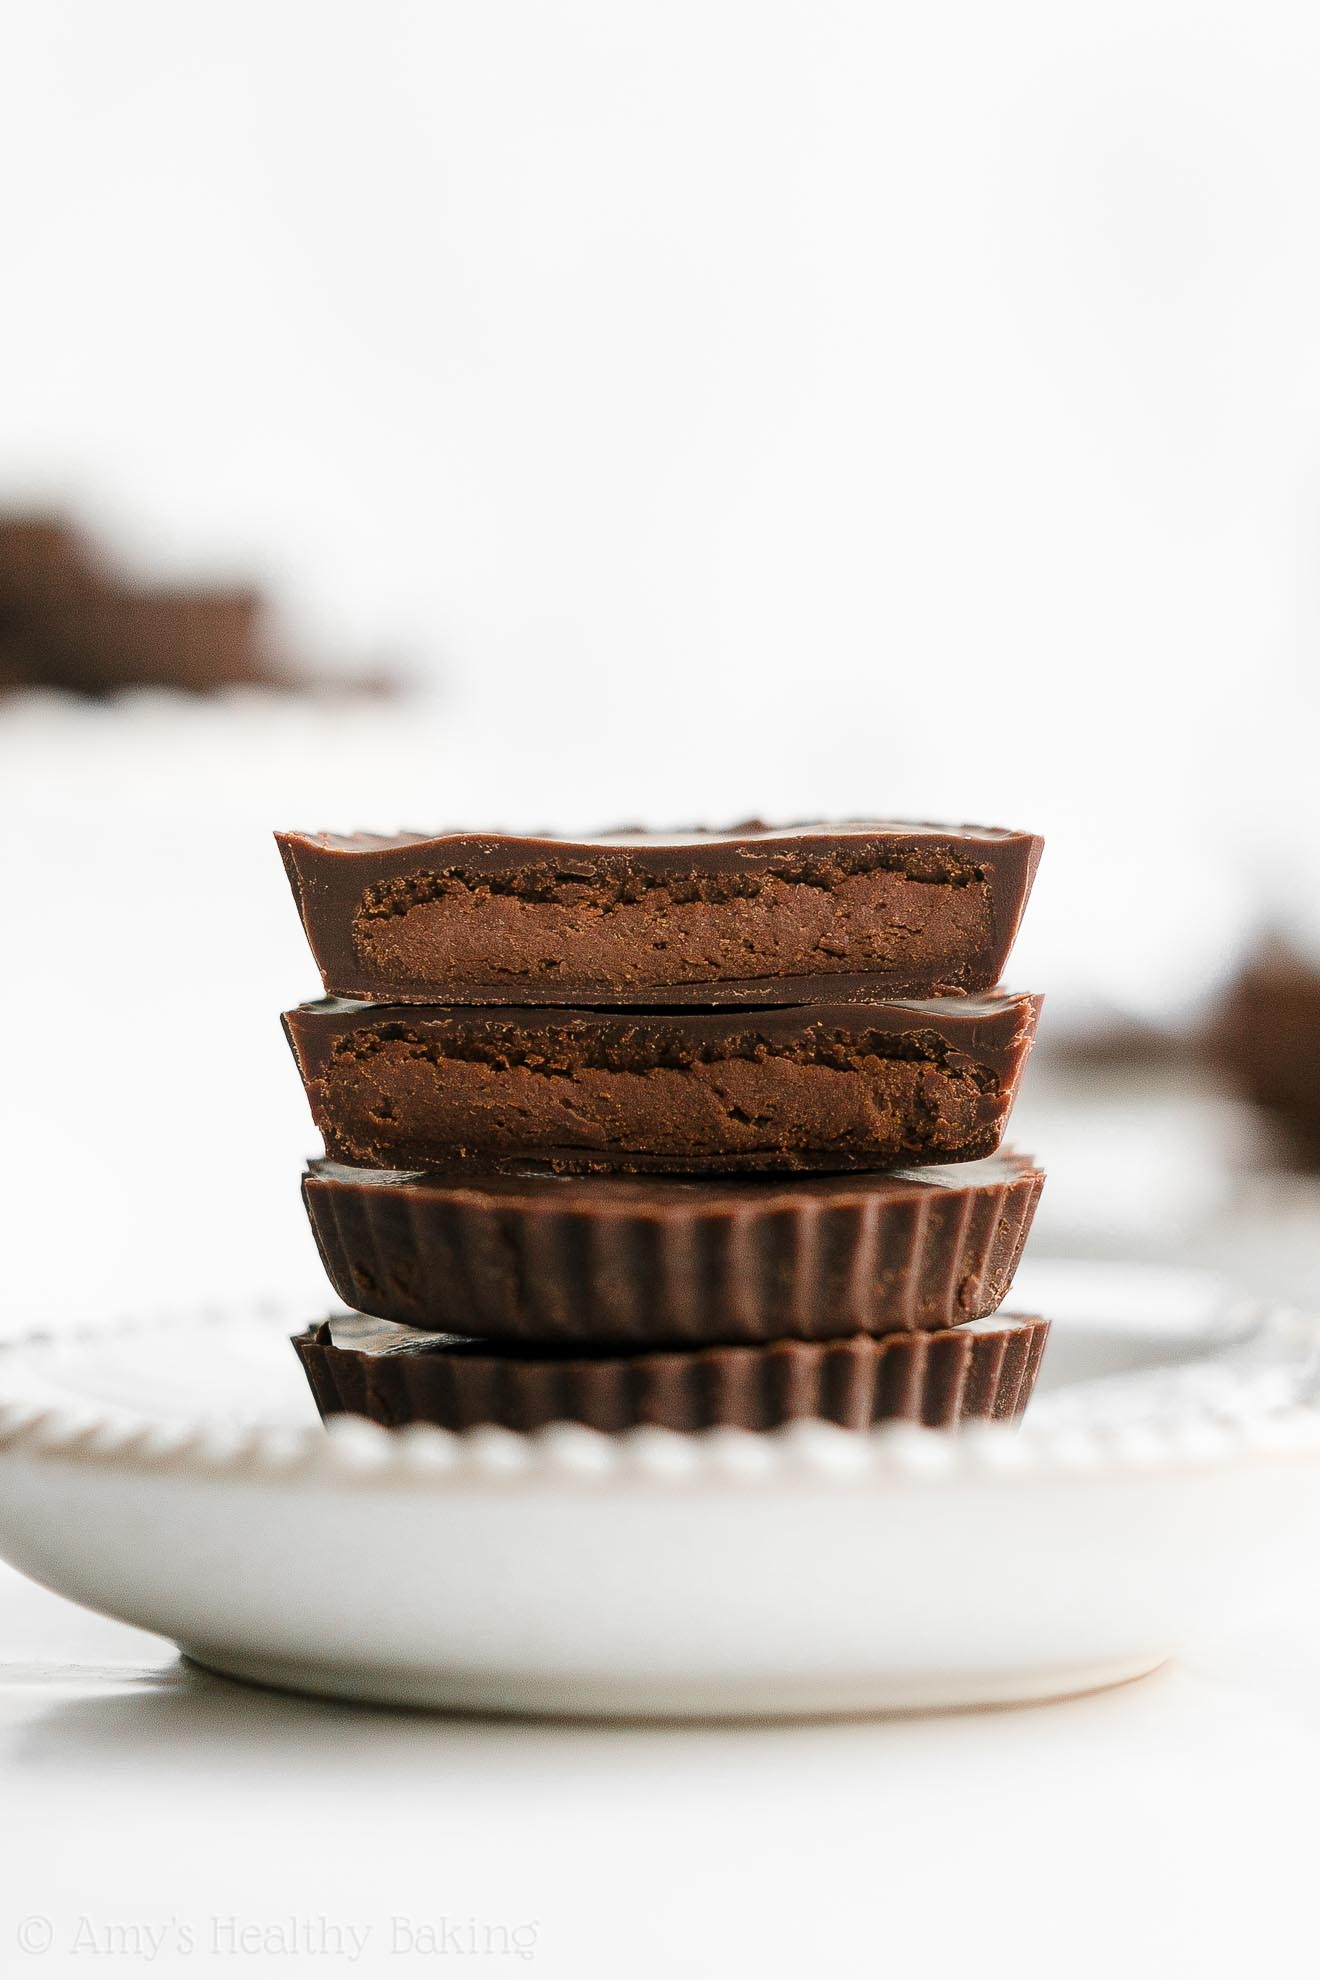 Healthy Homemade Low Carb Sugar Free Dark Chocolate Peanut Butter Cups